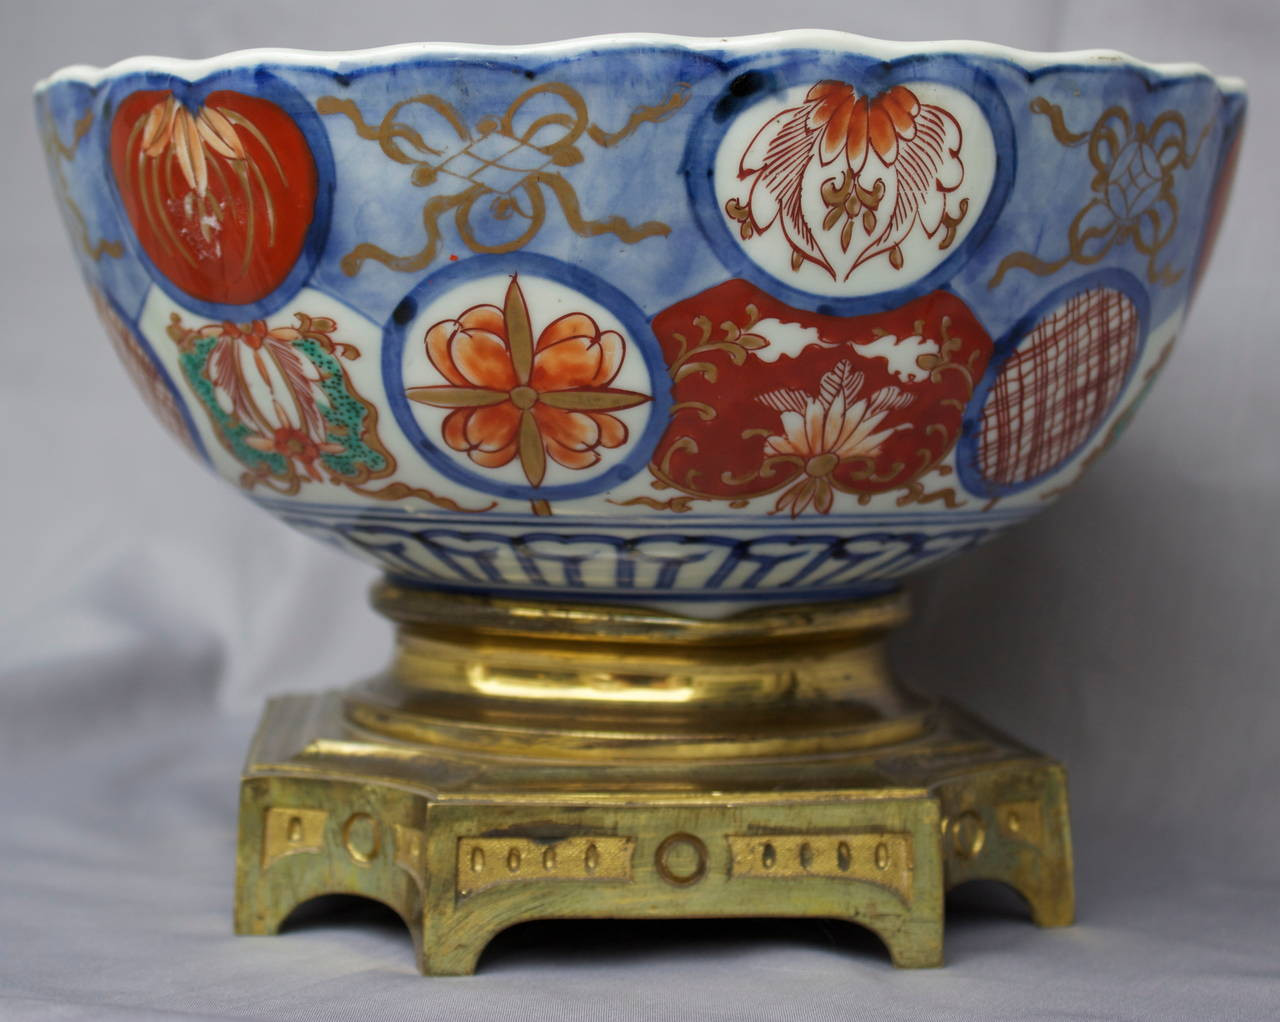 gold imari hand painted vase of imari porcelain bowl on a gilded bronze base at 1stdibs within imari porcelain bowl on a gilded bronze base for sale 1